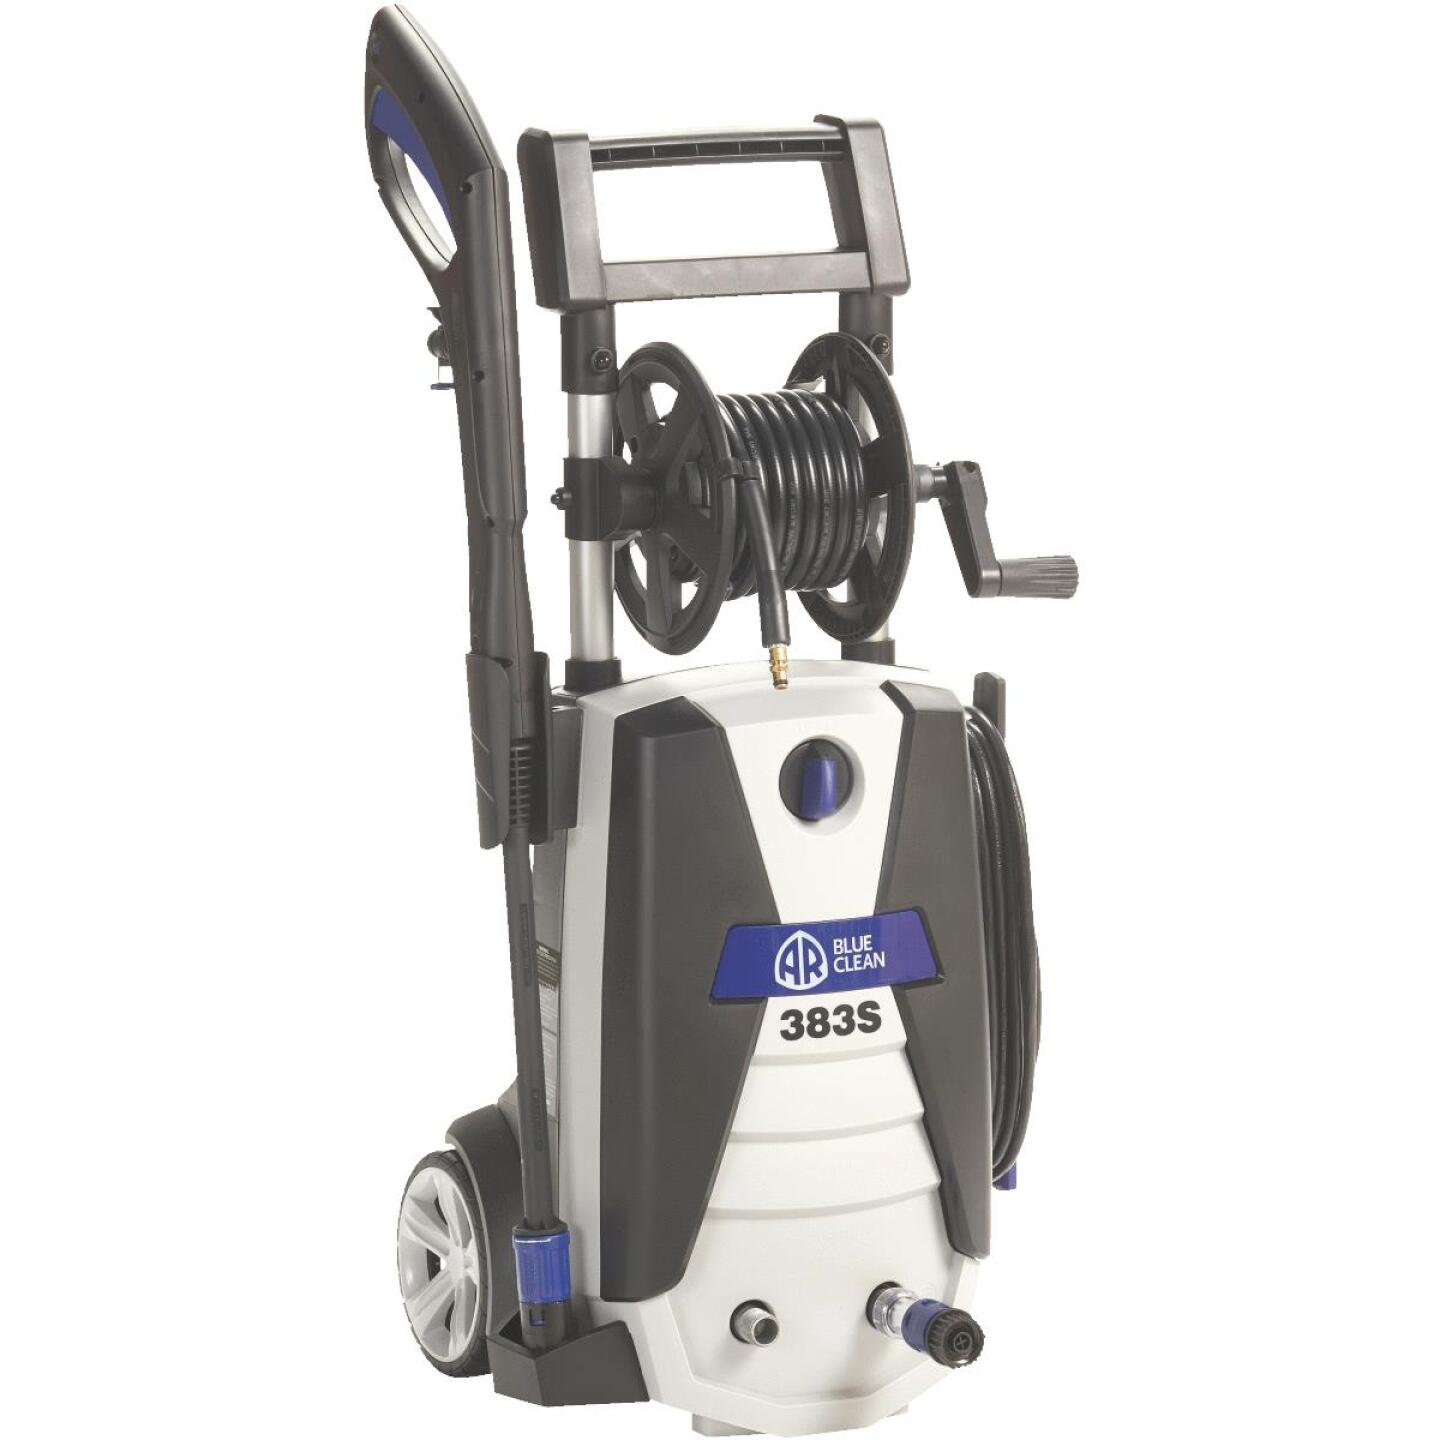 AR Blue Clean 1800 psi 1.3 GPM Cold Water Electric Pressure Washer Image 1